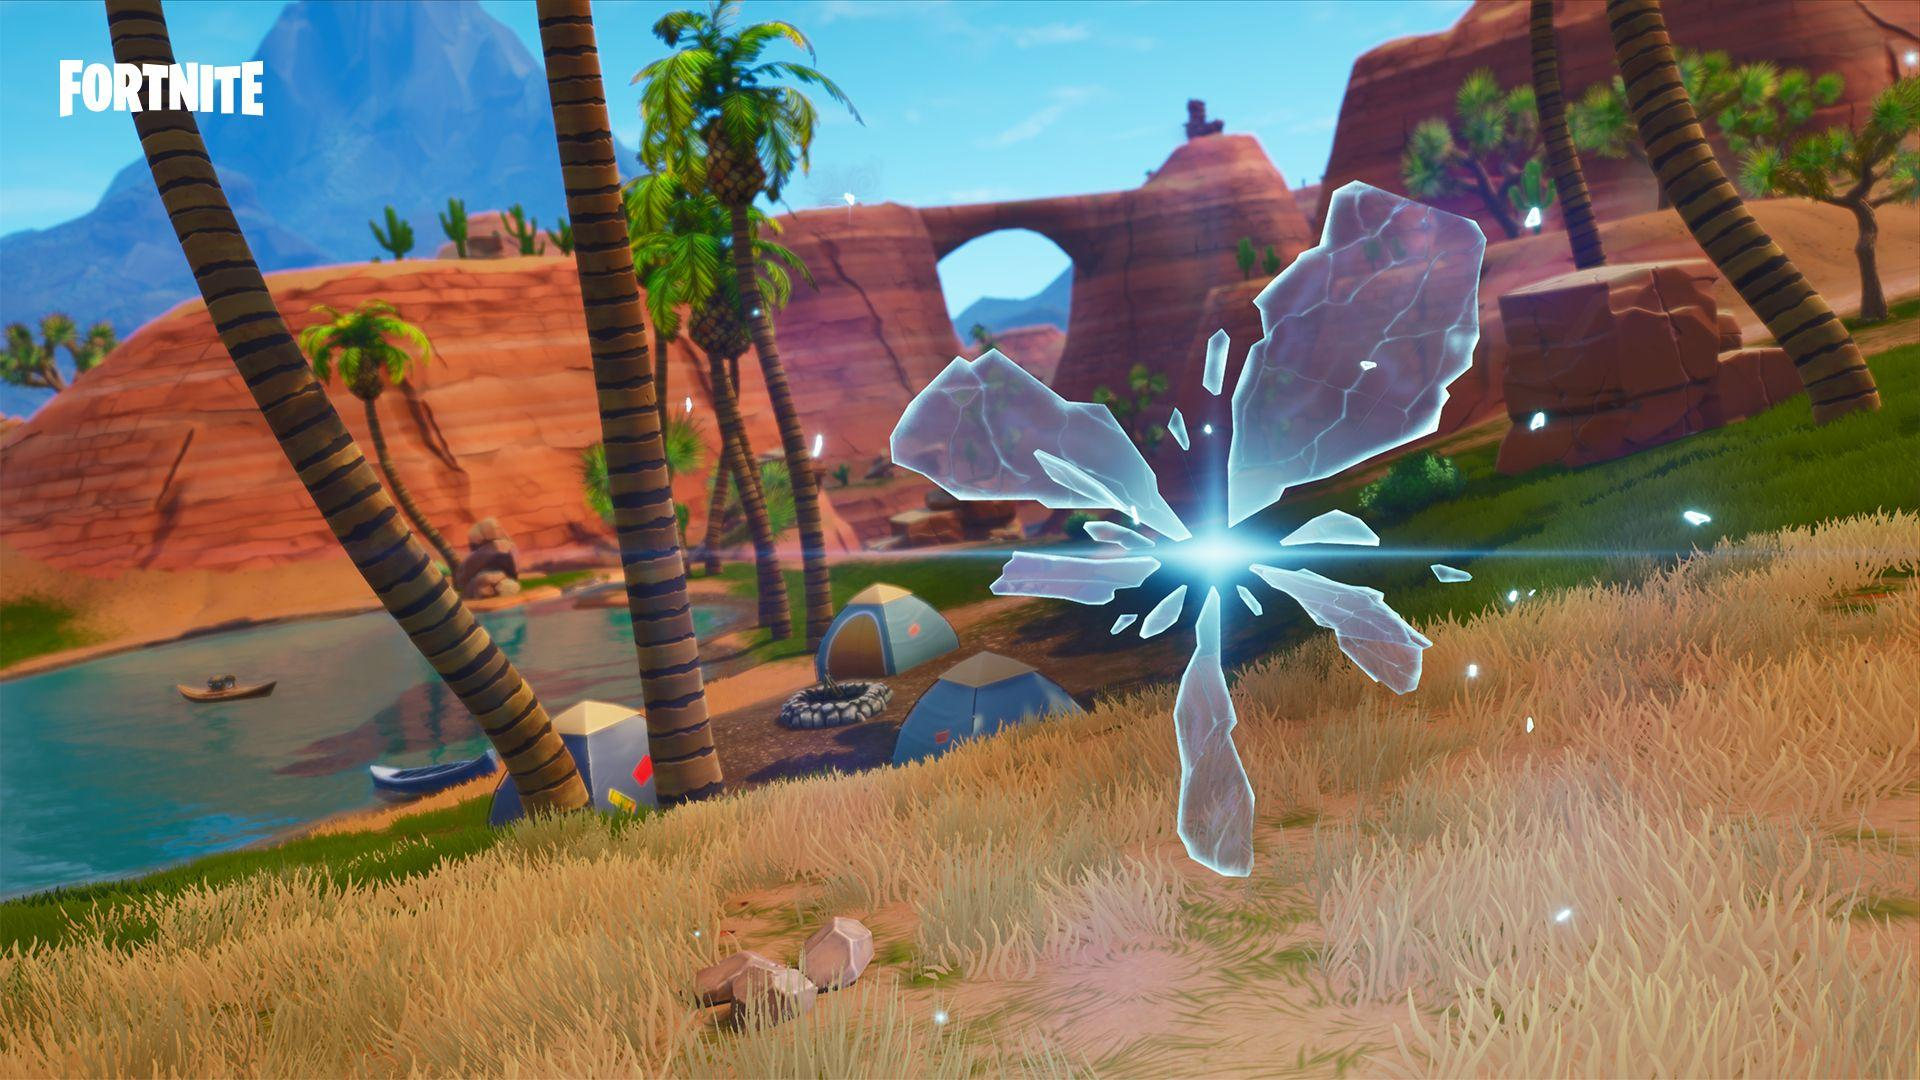 Fortnite Season 5 Launches With Map Changes, New Skins, And Battle